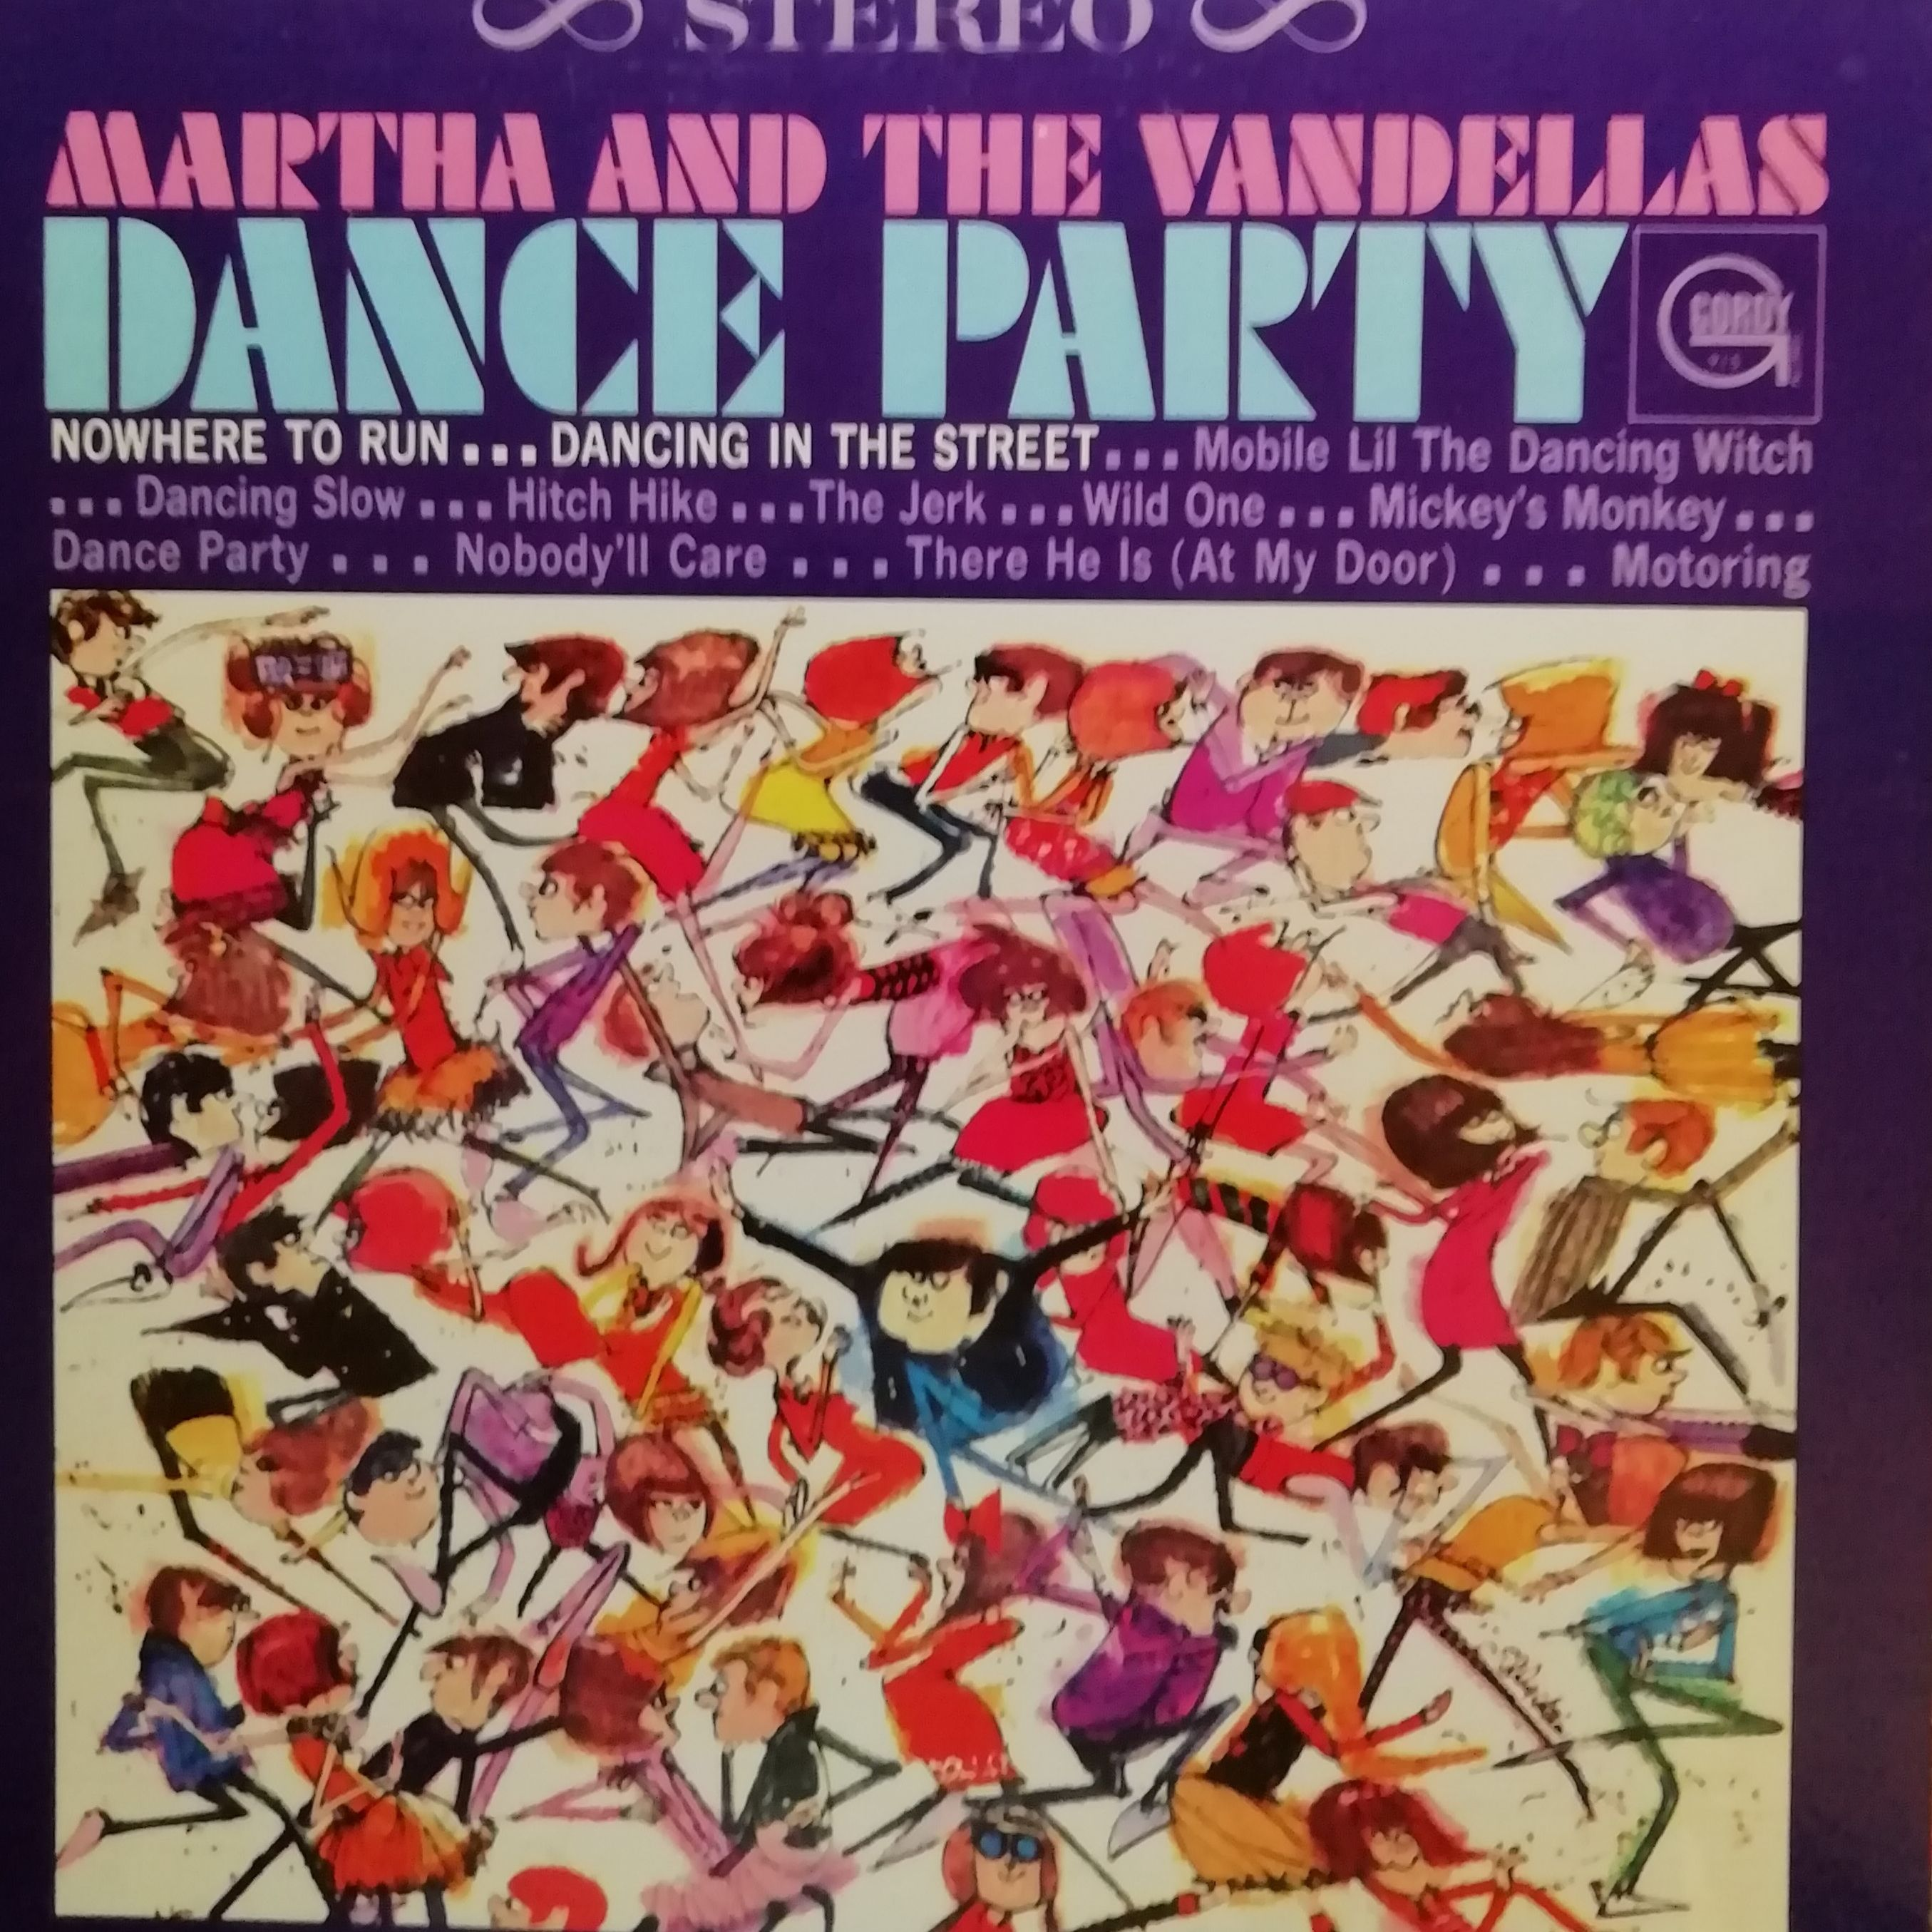 Martha And The Vandellas Dance Party LP undefined